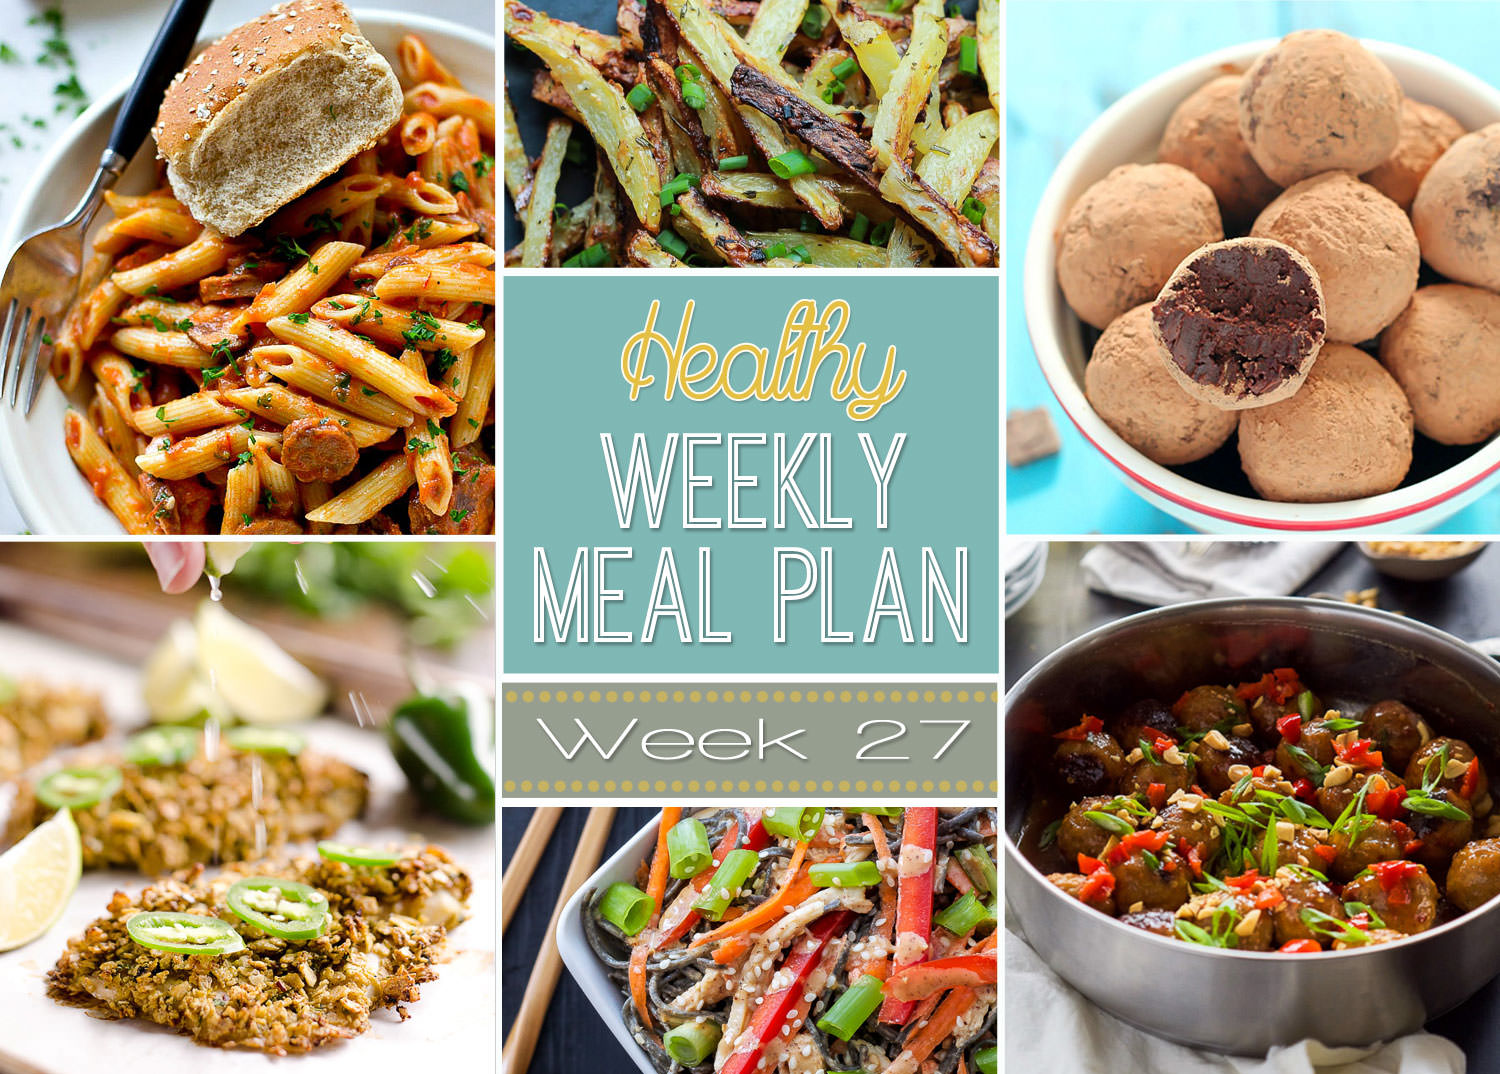 Healthy weekly meal plan light easy dinner ideas healthy weekly meal plan week 27 rect collage forumfinder Images